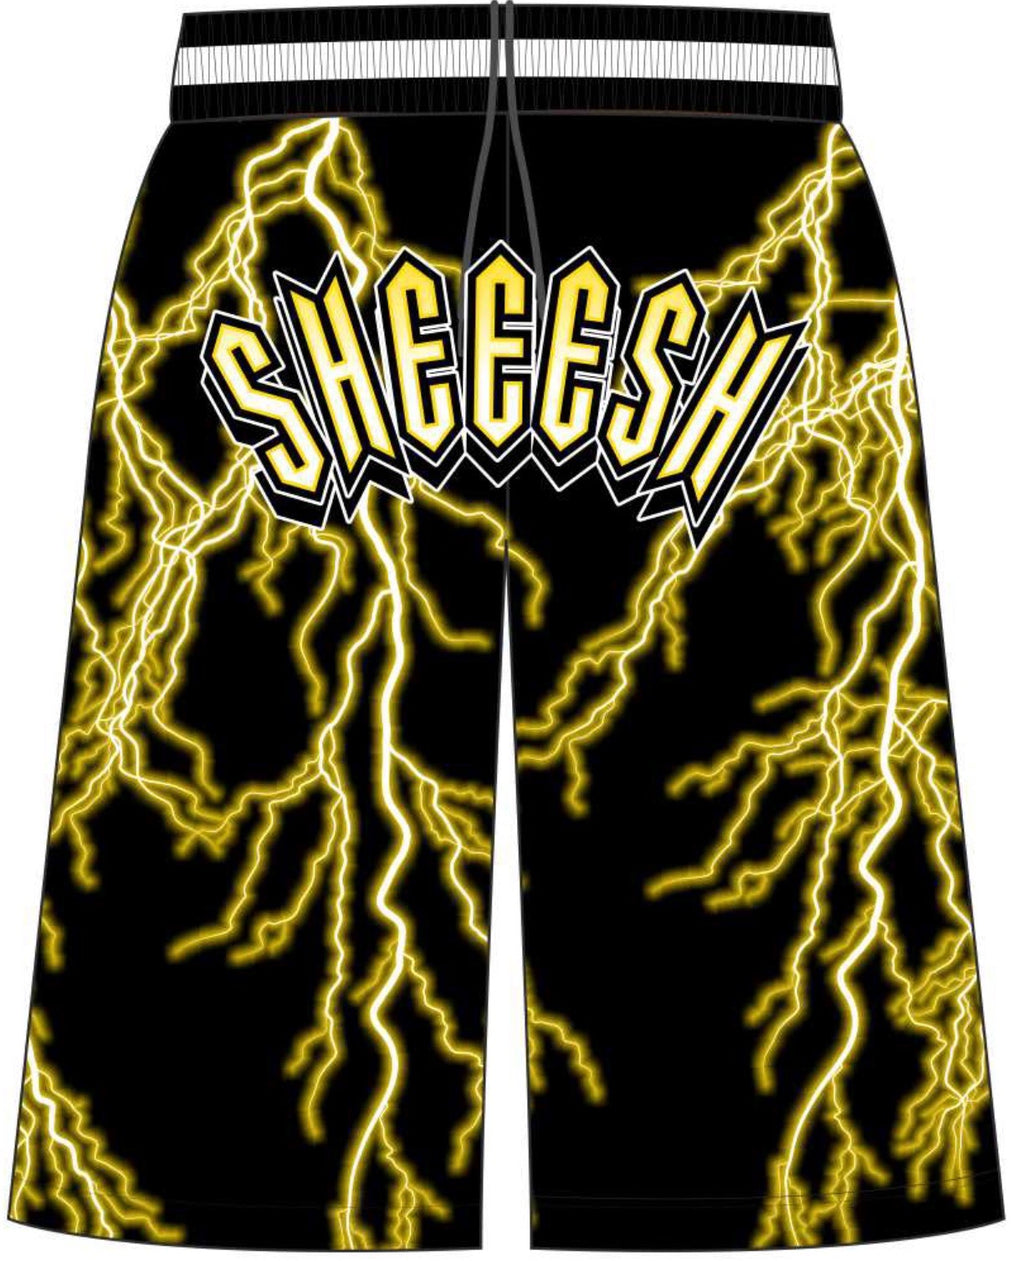 High Voltage Shorts - Black